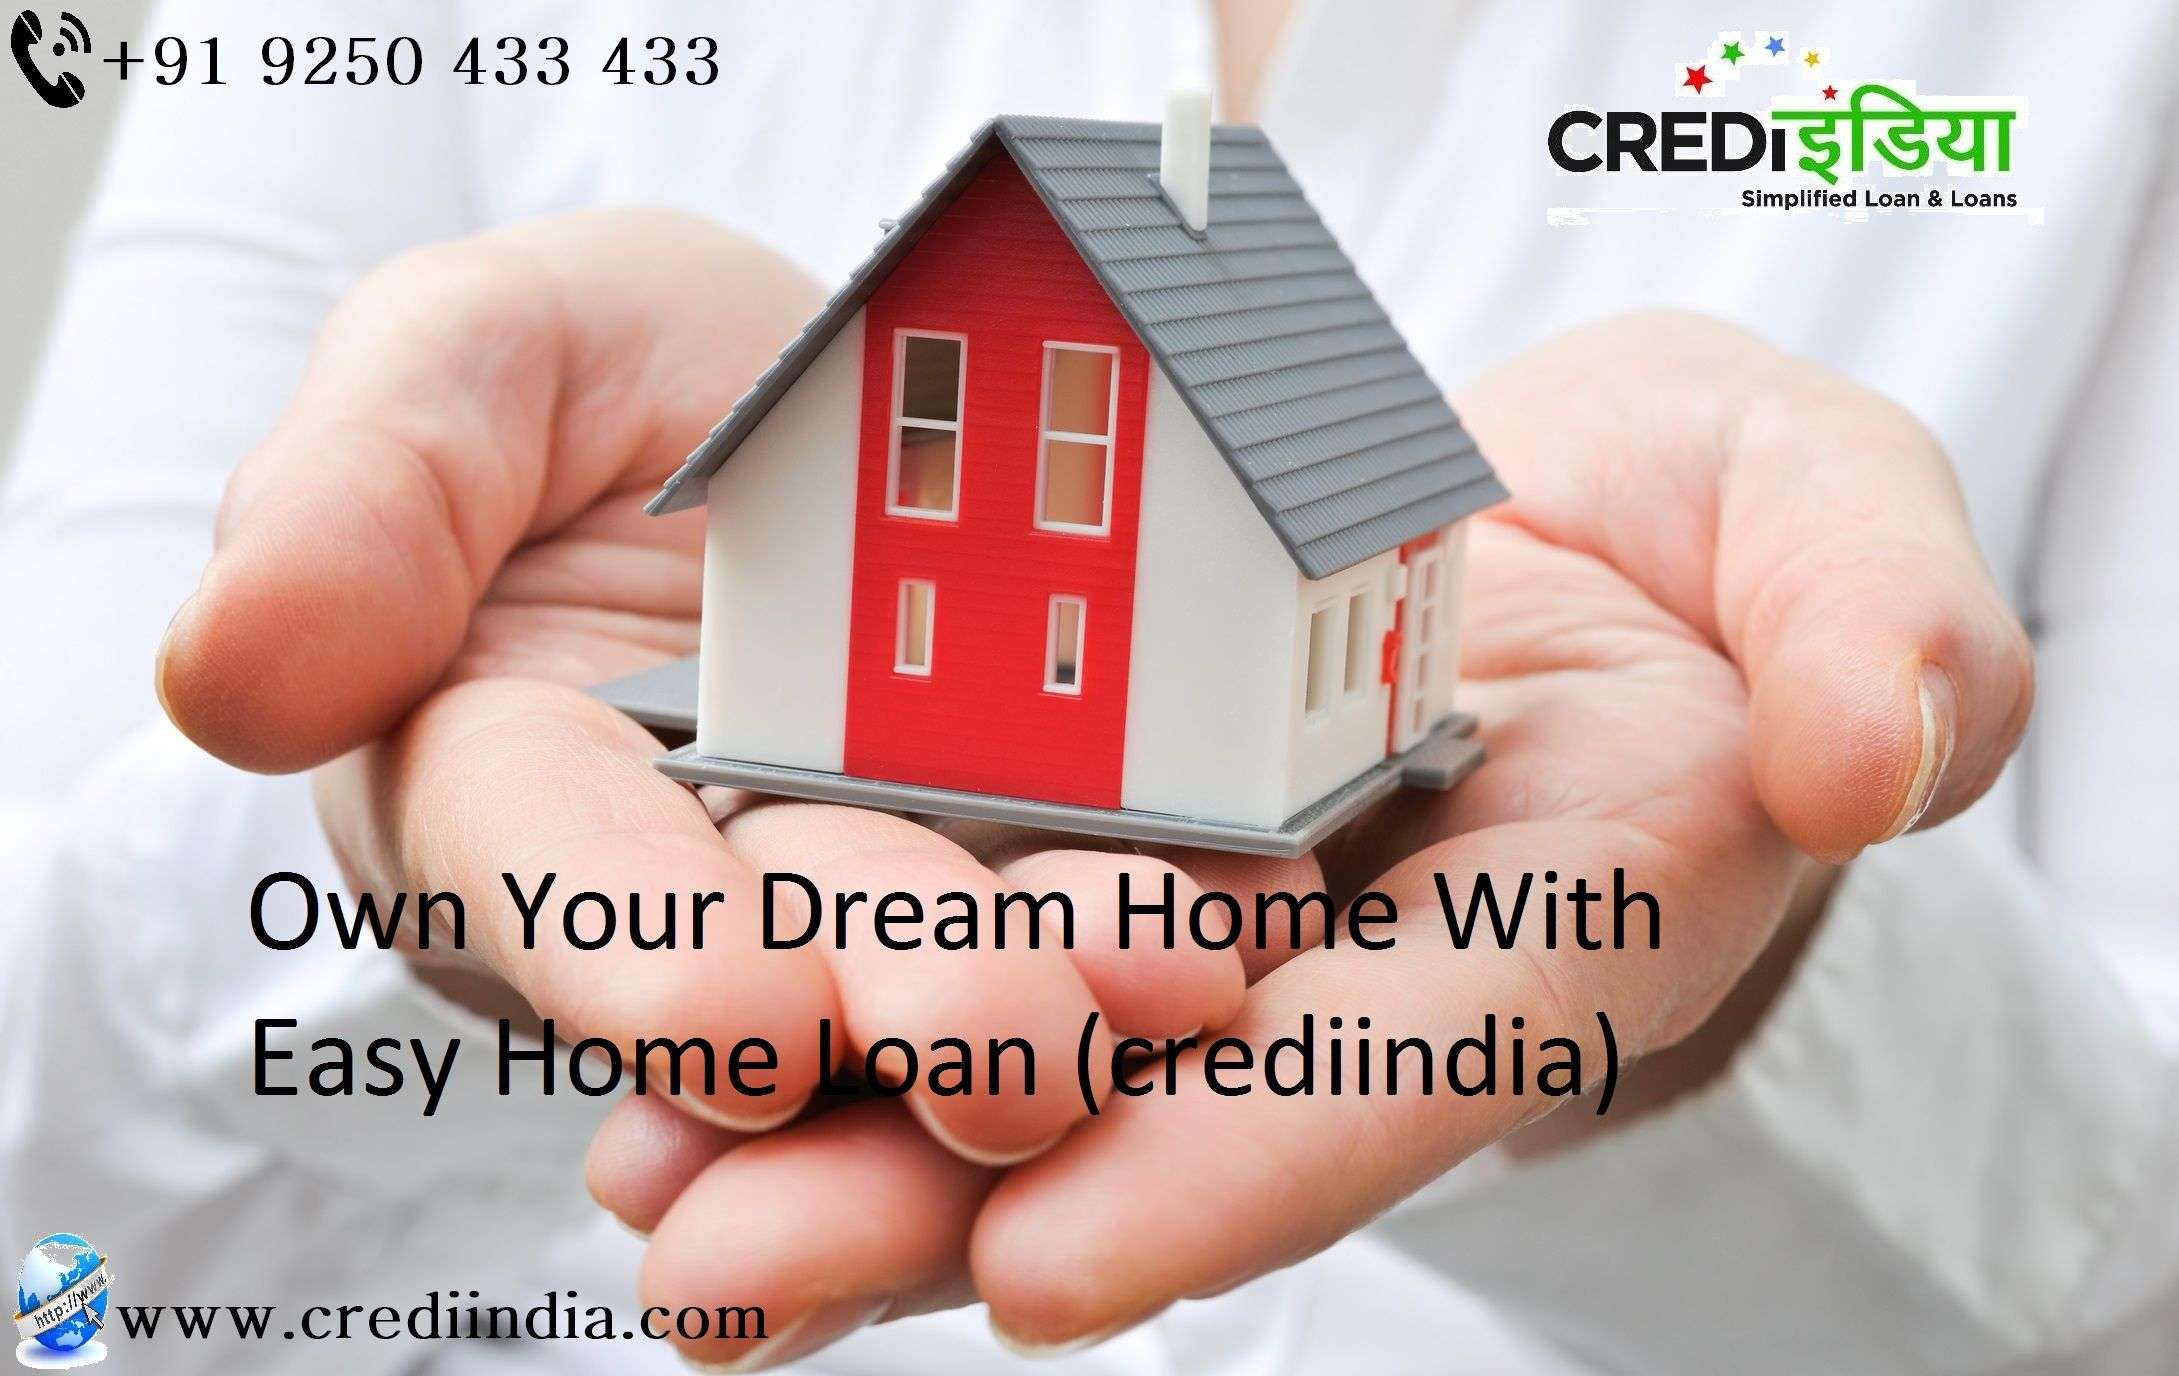 Do You Want To Any Types Of Loan Like Home Loan Loan Against Property Personal Loan Business Loan Easy Loan Ra Easy Loans Types Of Loans Loan Rates